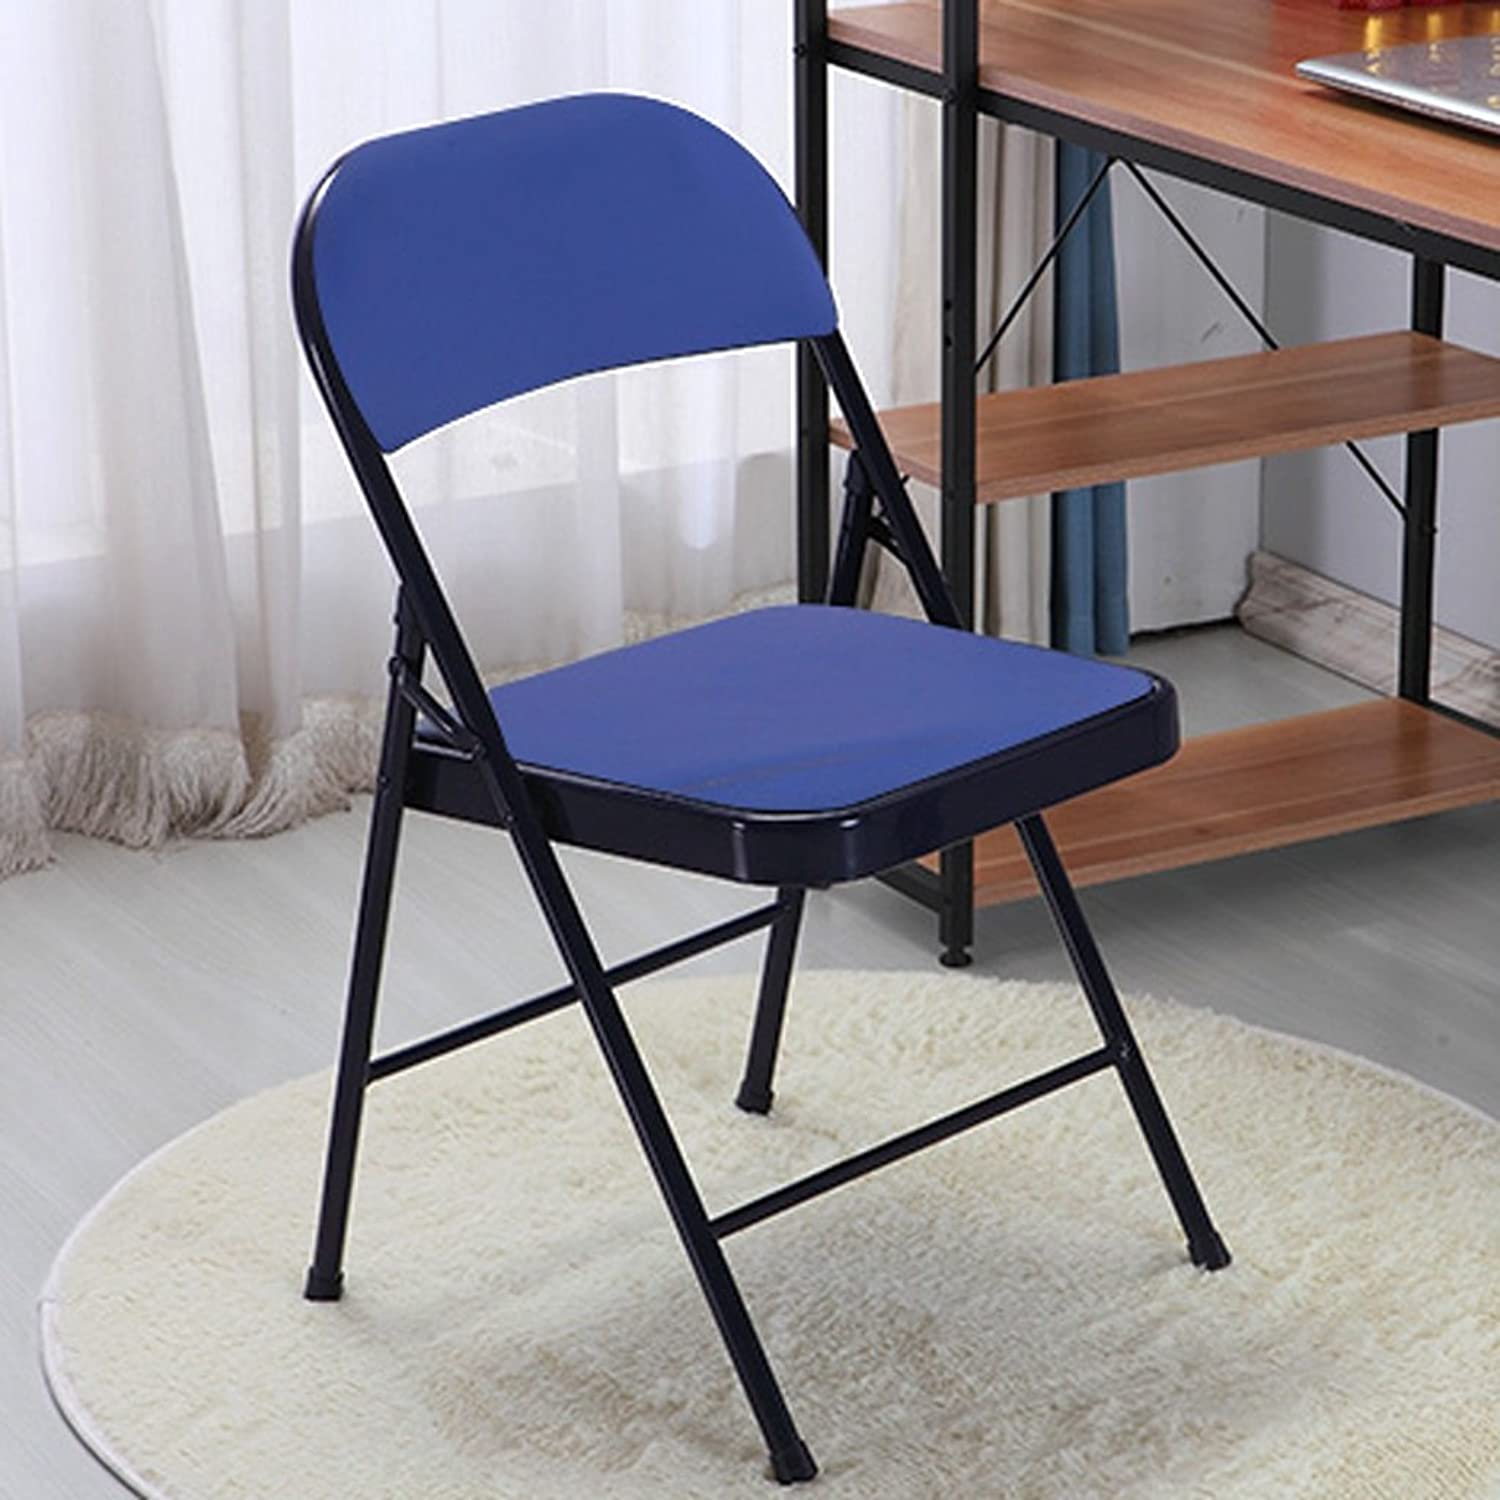 Chair Conference Folding Chair Home Computer Casual Chair Simple Office Chair Stool Stylish Dining Chair (color   Black and bluee)